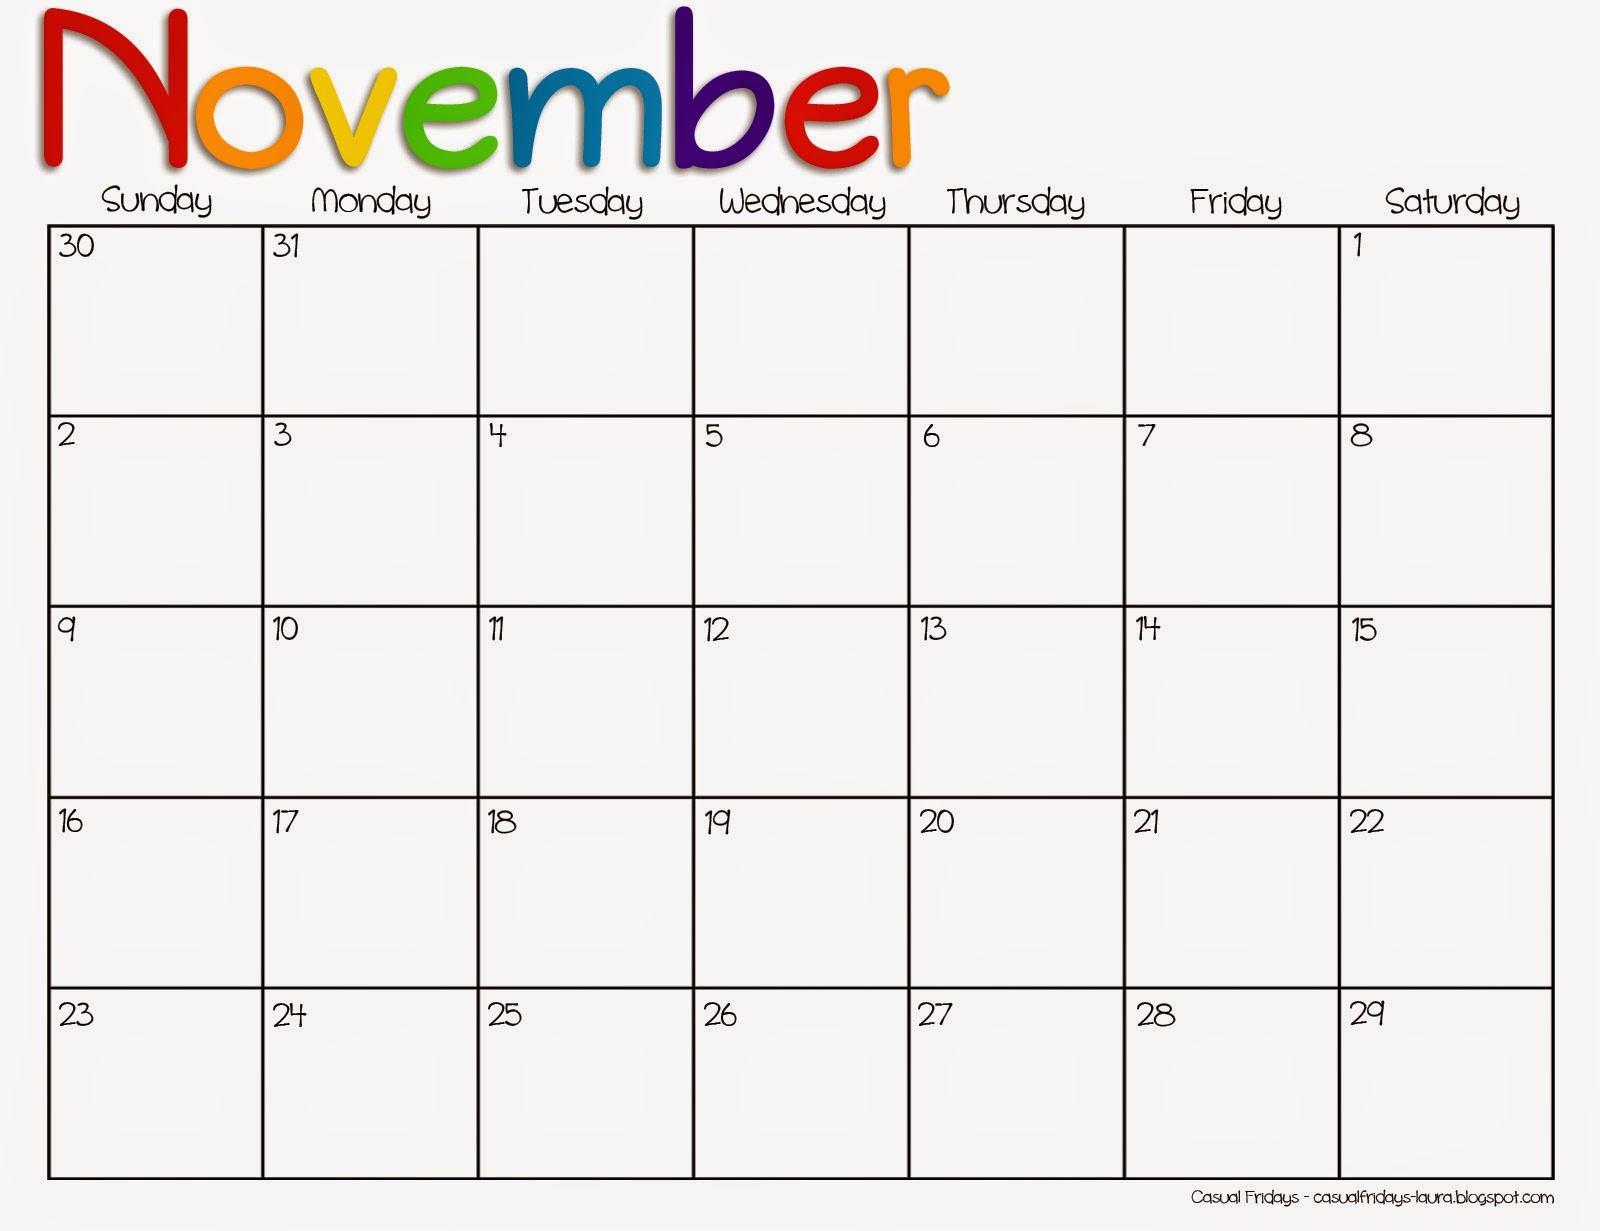 November 2016 Printable Calendar  Monthly Calendar Word Template